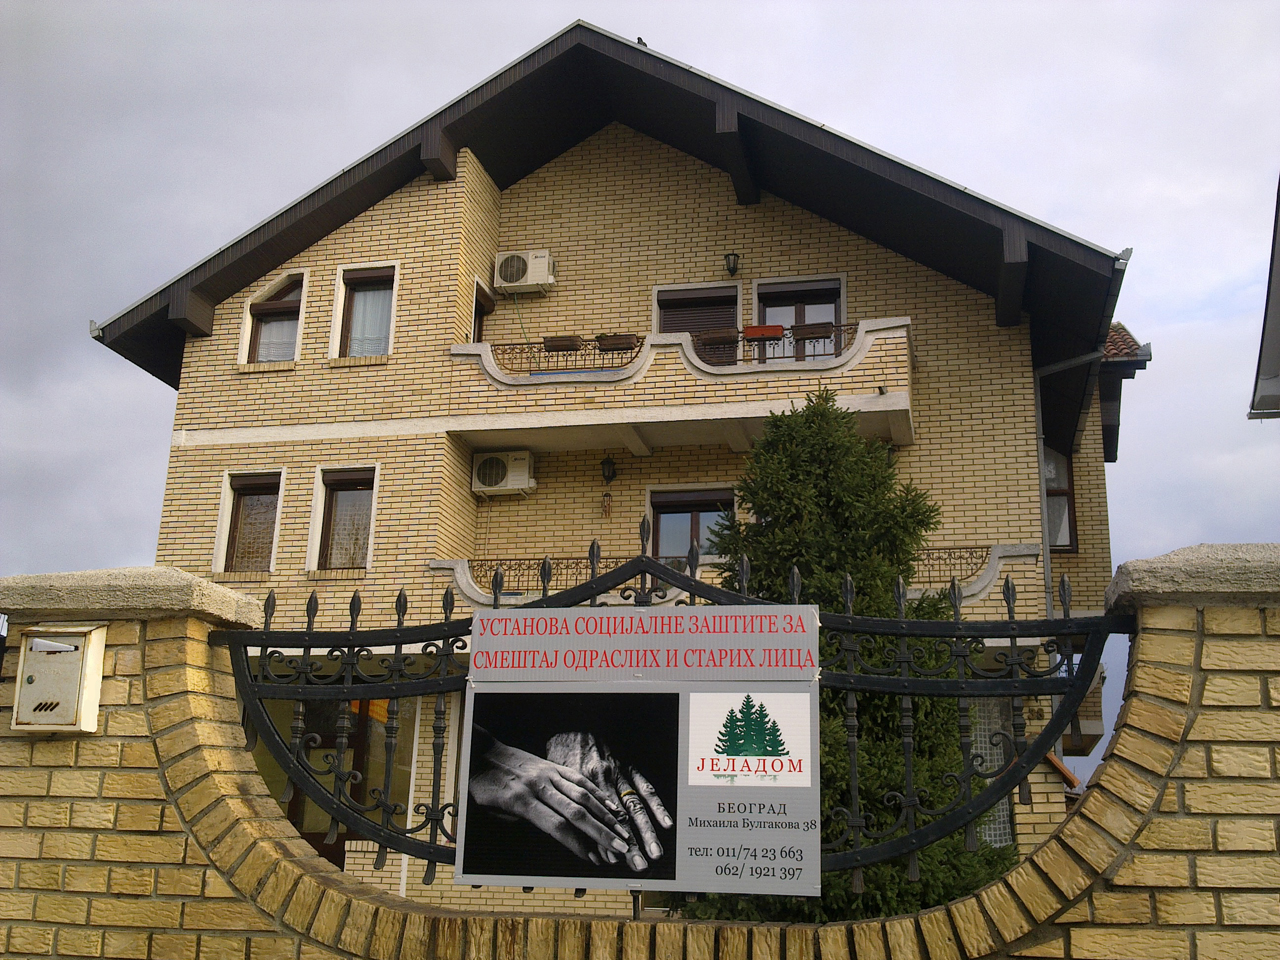 DOM ZA STARE JELADOM Homes and care for the elderly Beograd